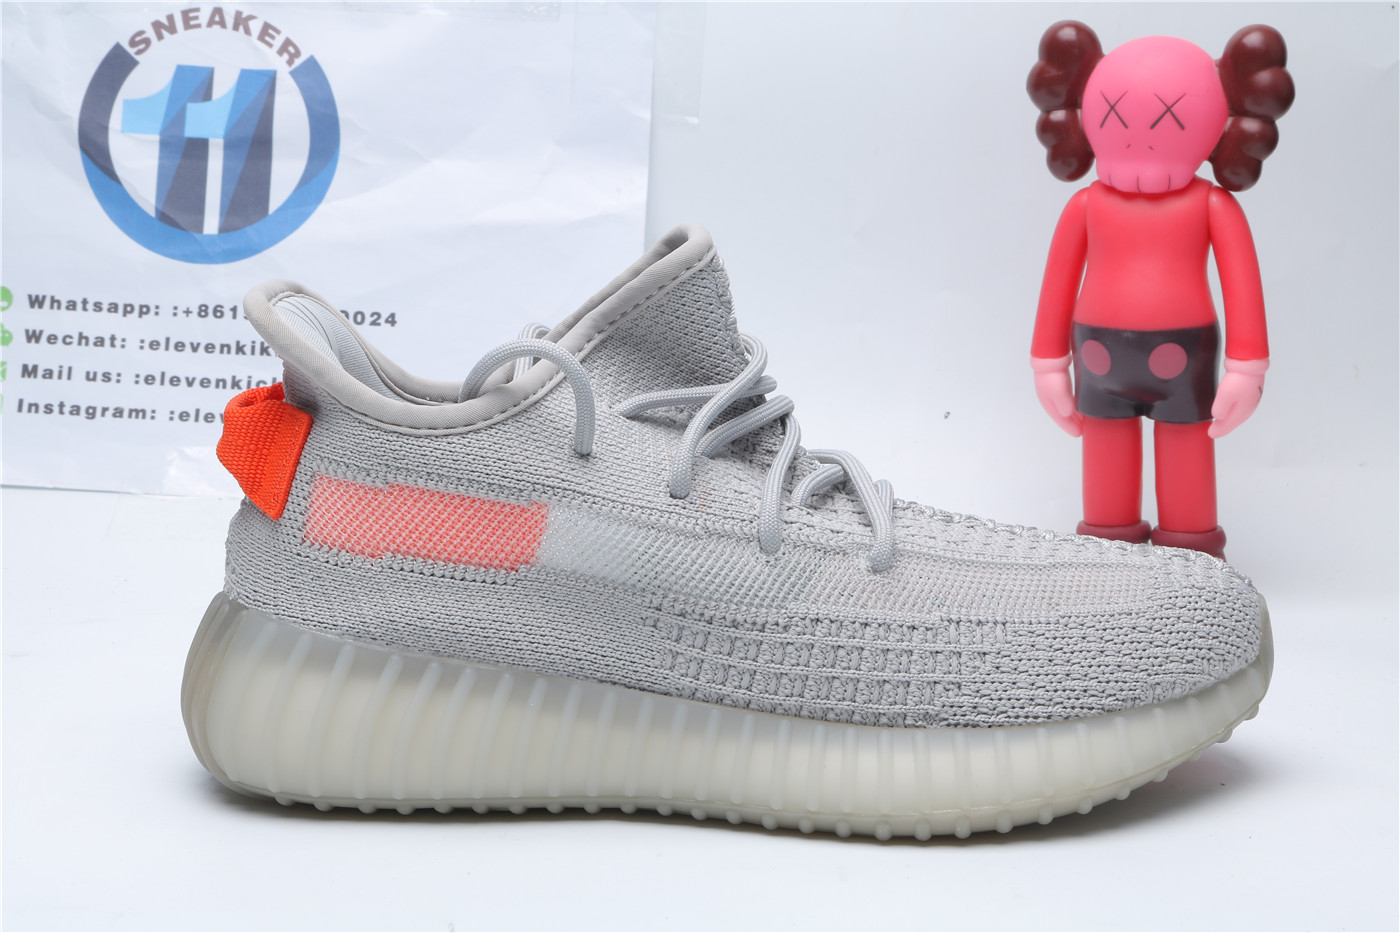 Adidas Yeezy Boost 350 V2 Tail Light 9017